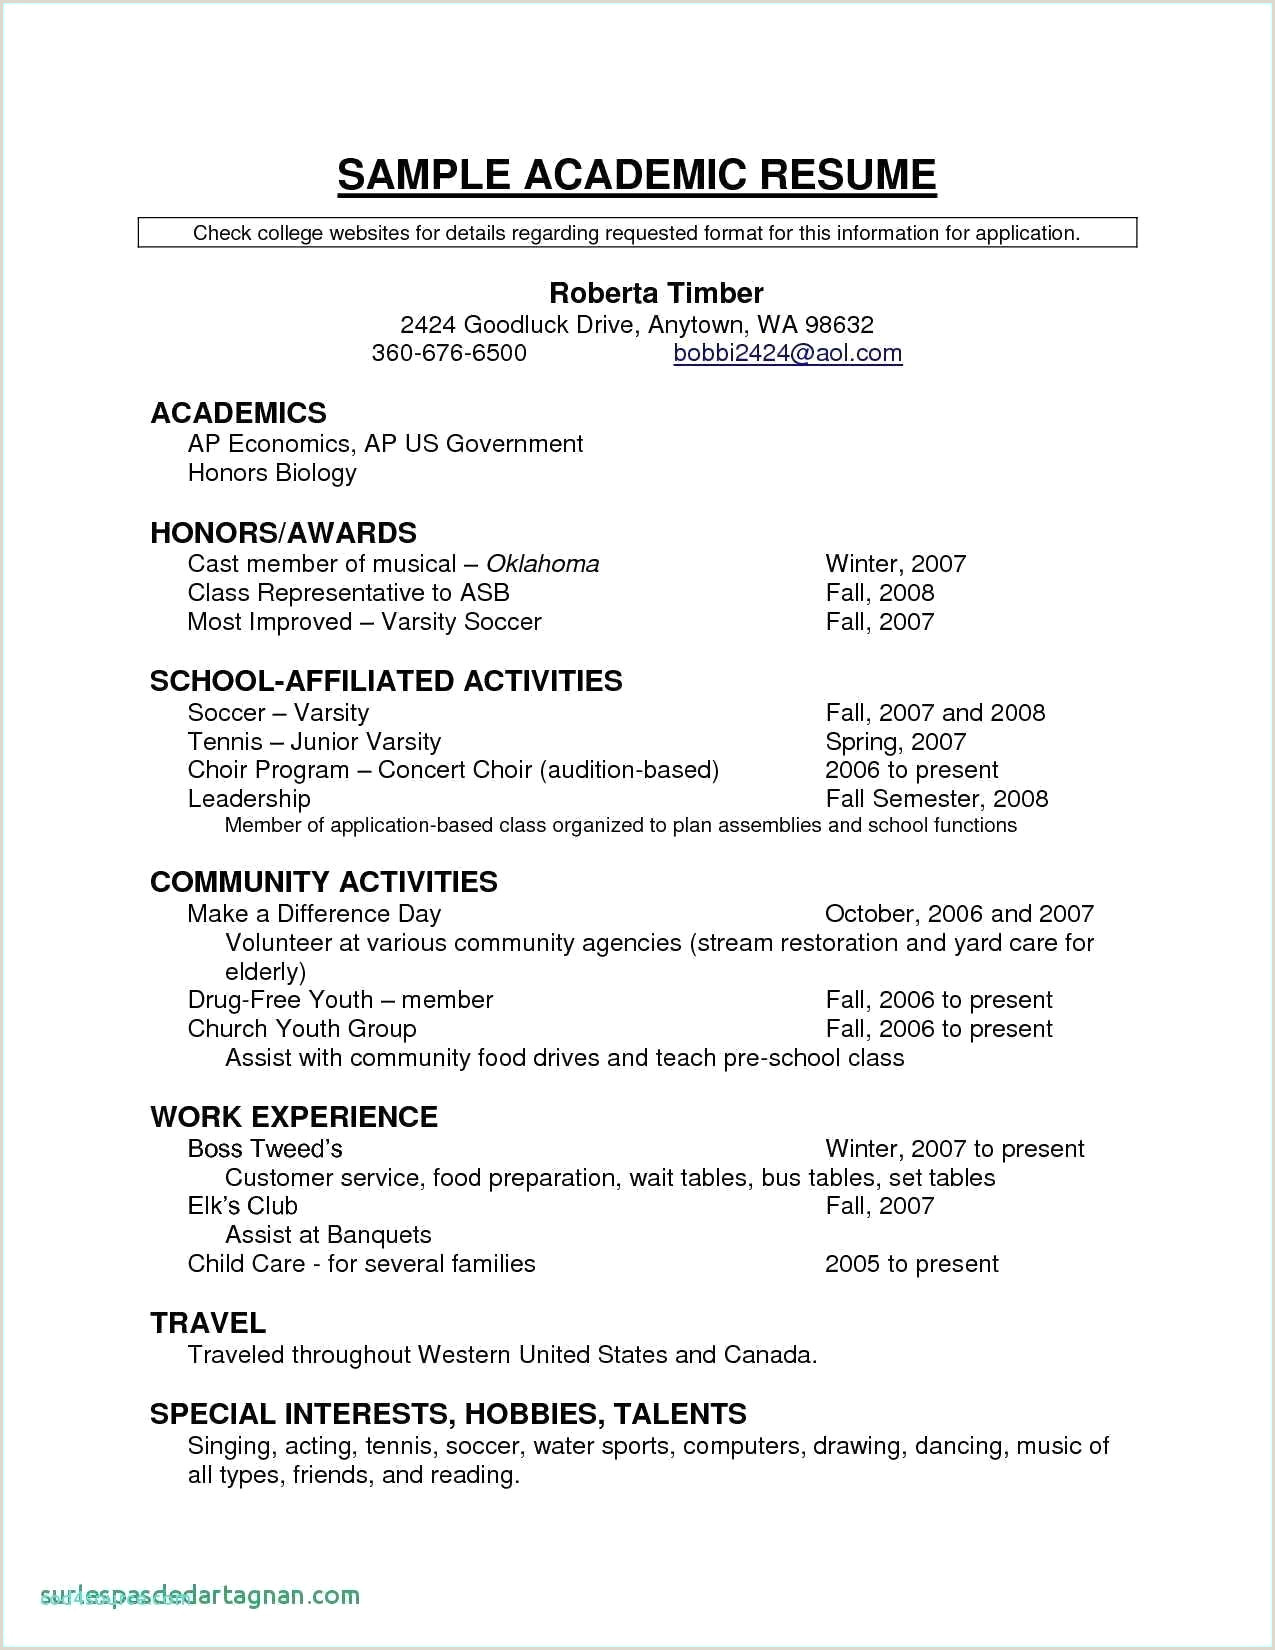 Human Resources Manager Resume Sample Human Resources Manager Resume Elegant Human Resource